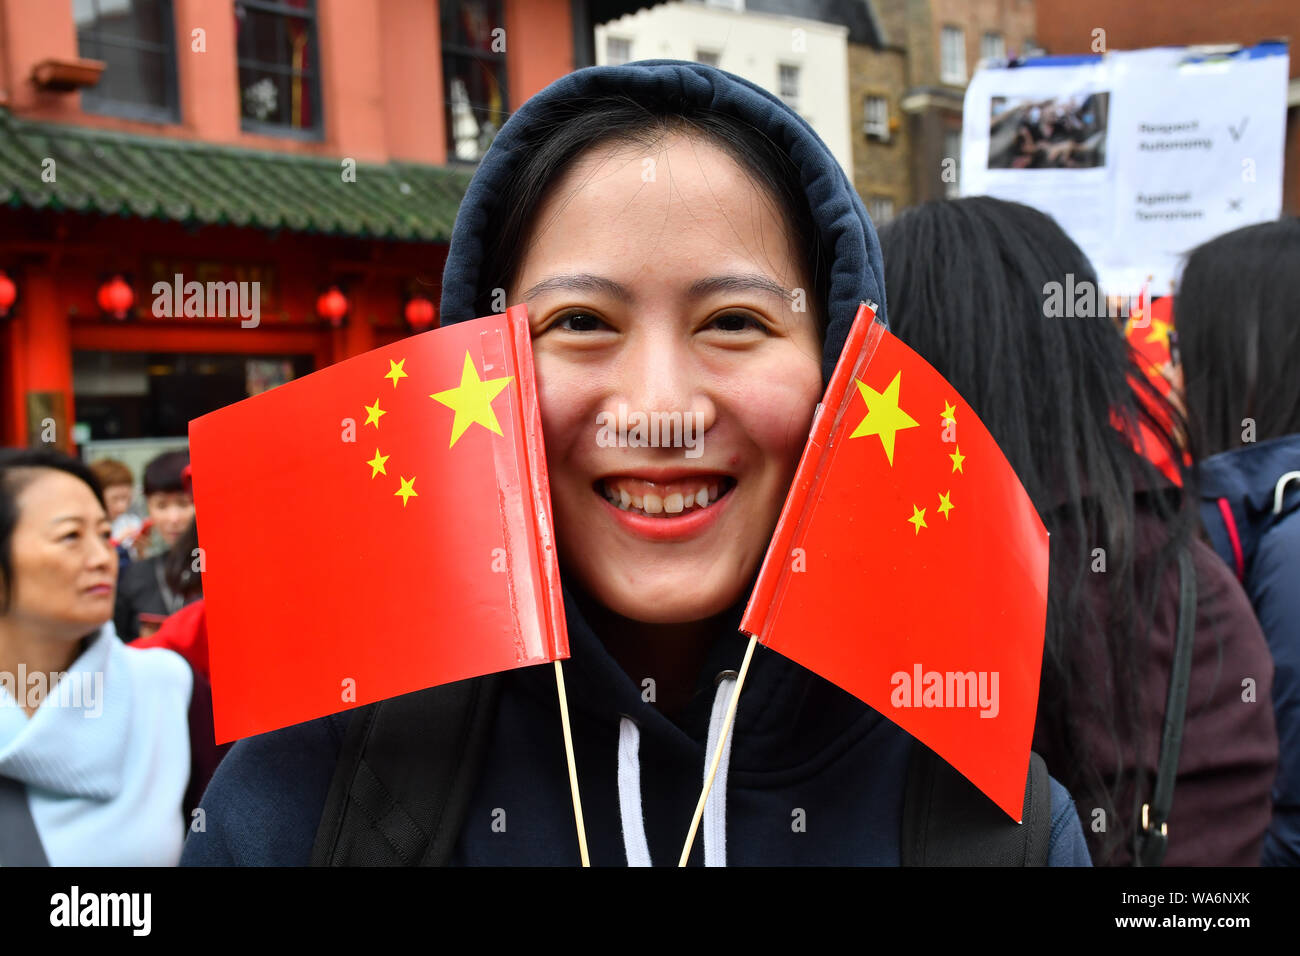 """London, UK. 18 August 2019. Hundreds of Pro-China and Pro-HK united """"We love China - We Love HK"""" to supports HK police assembly in London Chinatown march to Trafalgar Square anti-violence and restore peace in HK, singing China national anthem along the way and all the criminal must be punished by the rule of law. In fact, Since the HK protests and the western propaganda media backfire each day China growing supporters from all world and oversea born Chineseand your self consciousness. Credit: Picture Capital/Alamy Live News Stock Photo"""